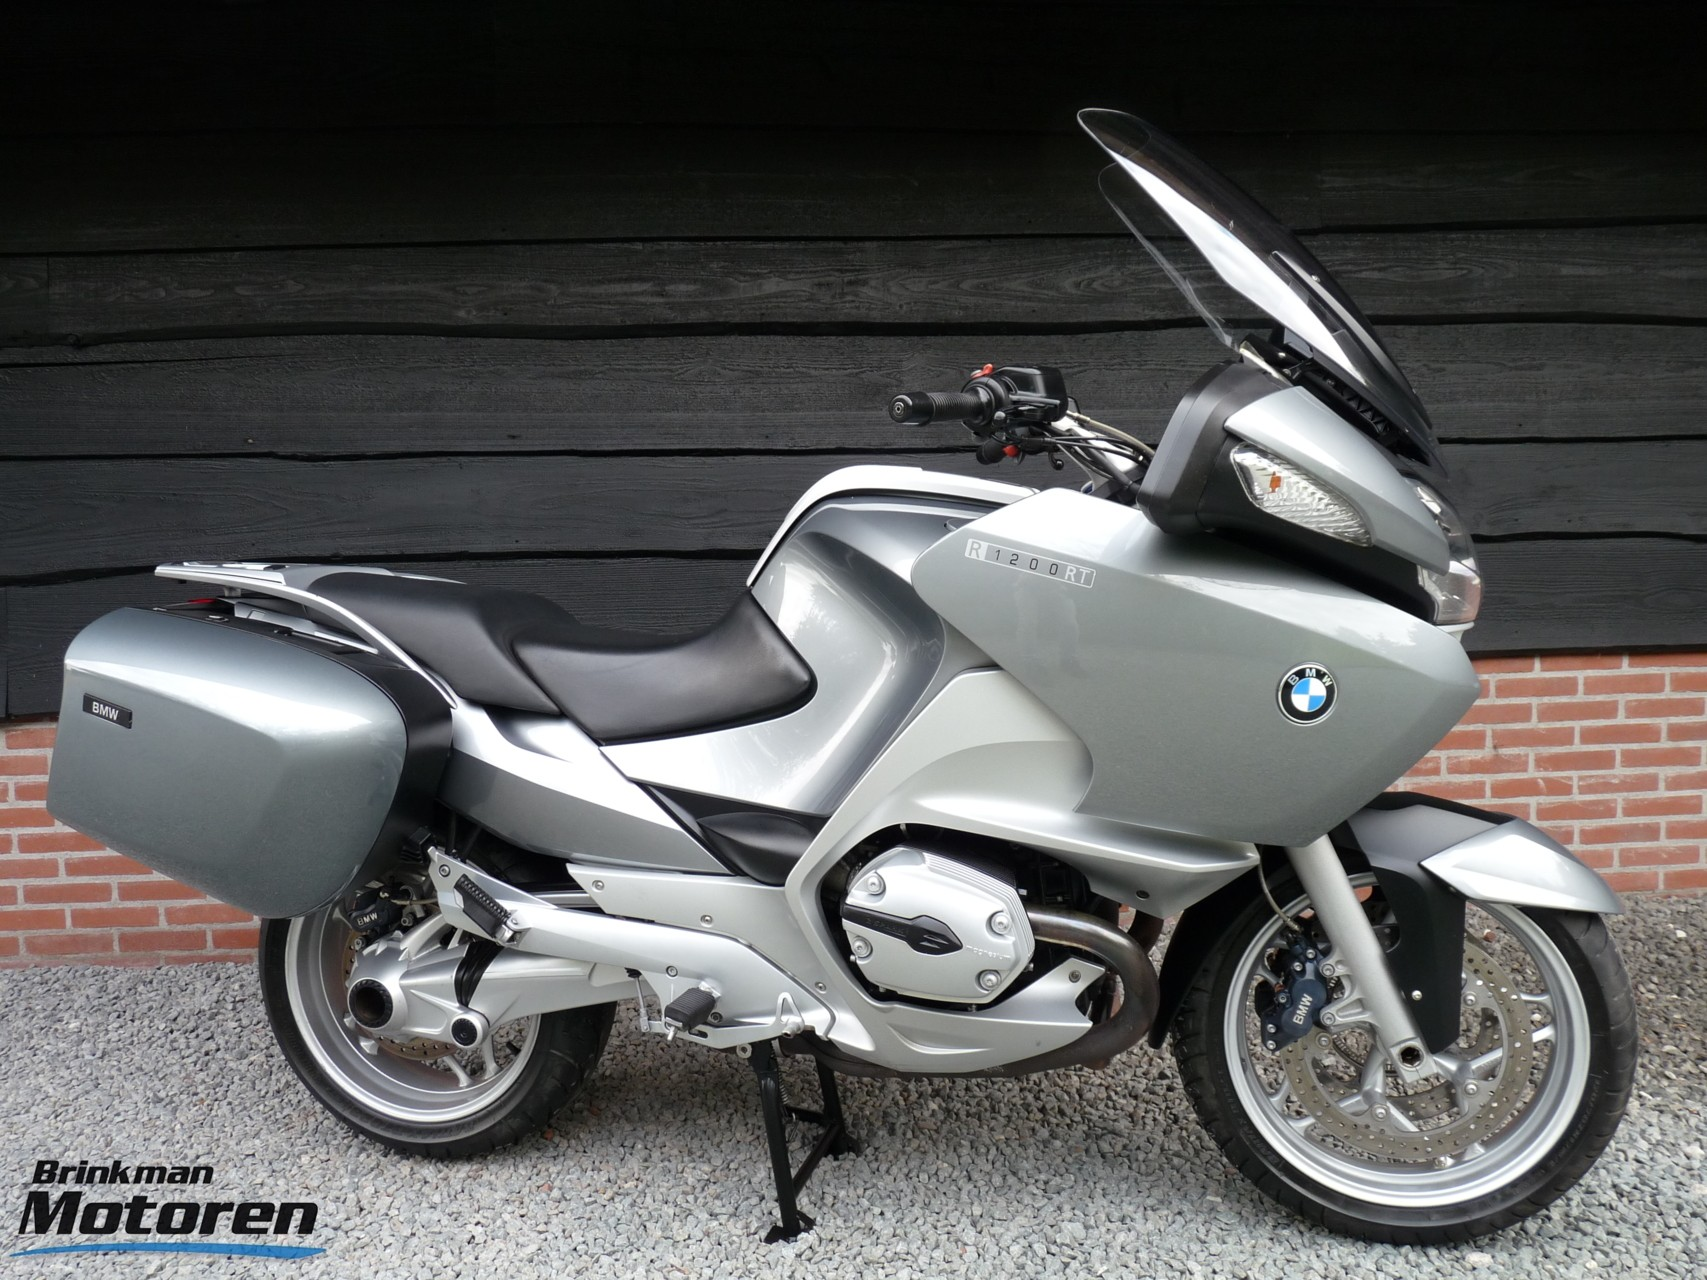 BMW  R 1200 RT ABS / R1200RT